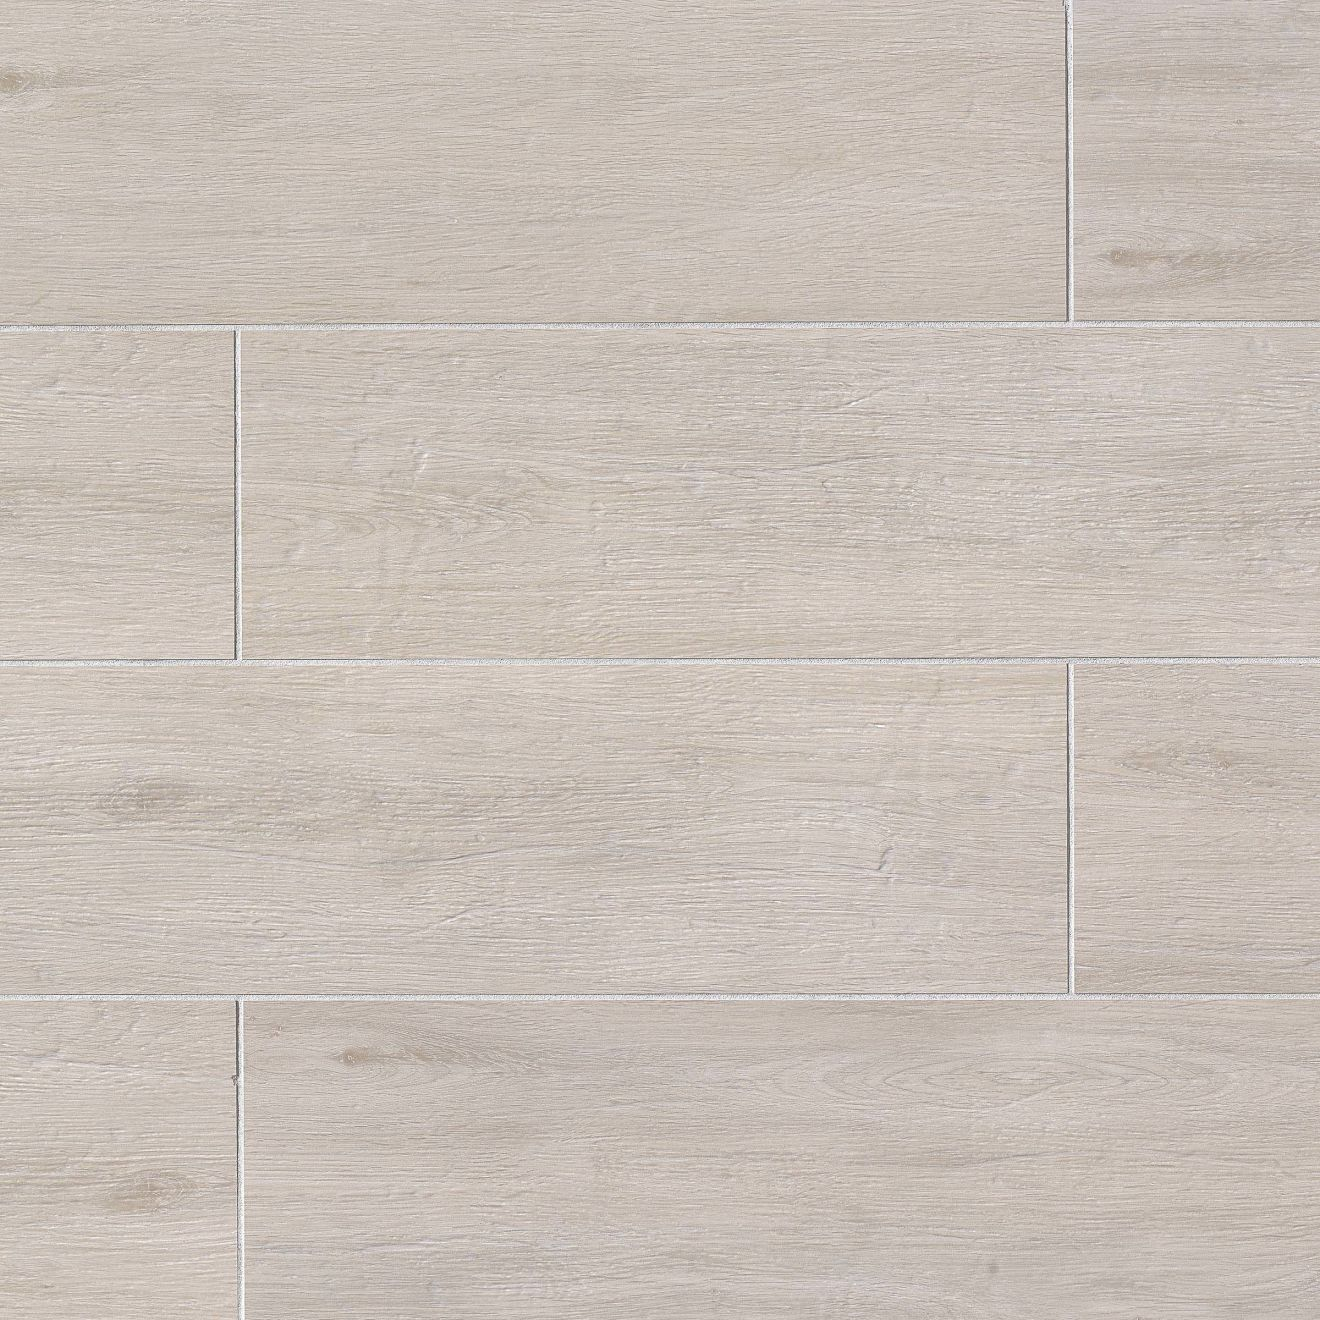 Titus 8 X 36 Floor Wall Tile In White